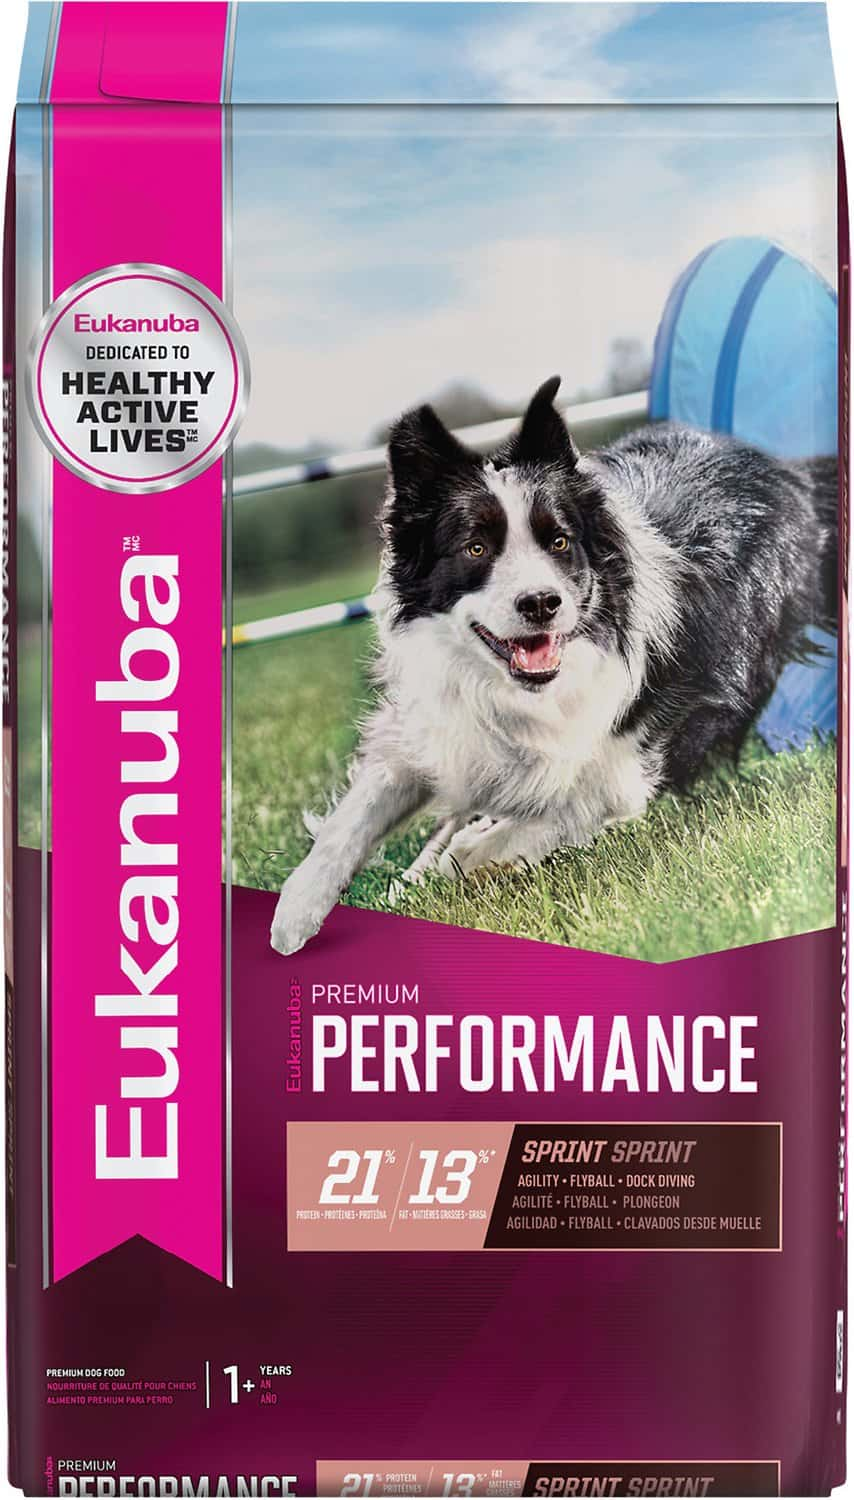 Eukanuba Dog Food: 2020 Review, Recalls & Coupons 11